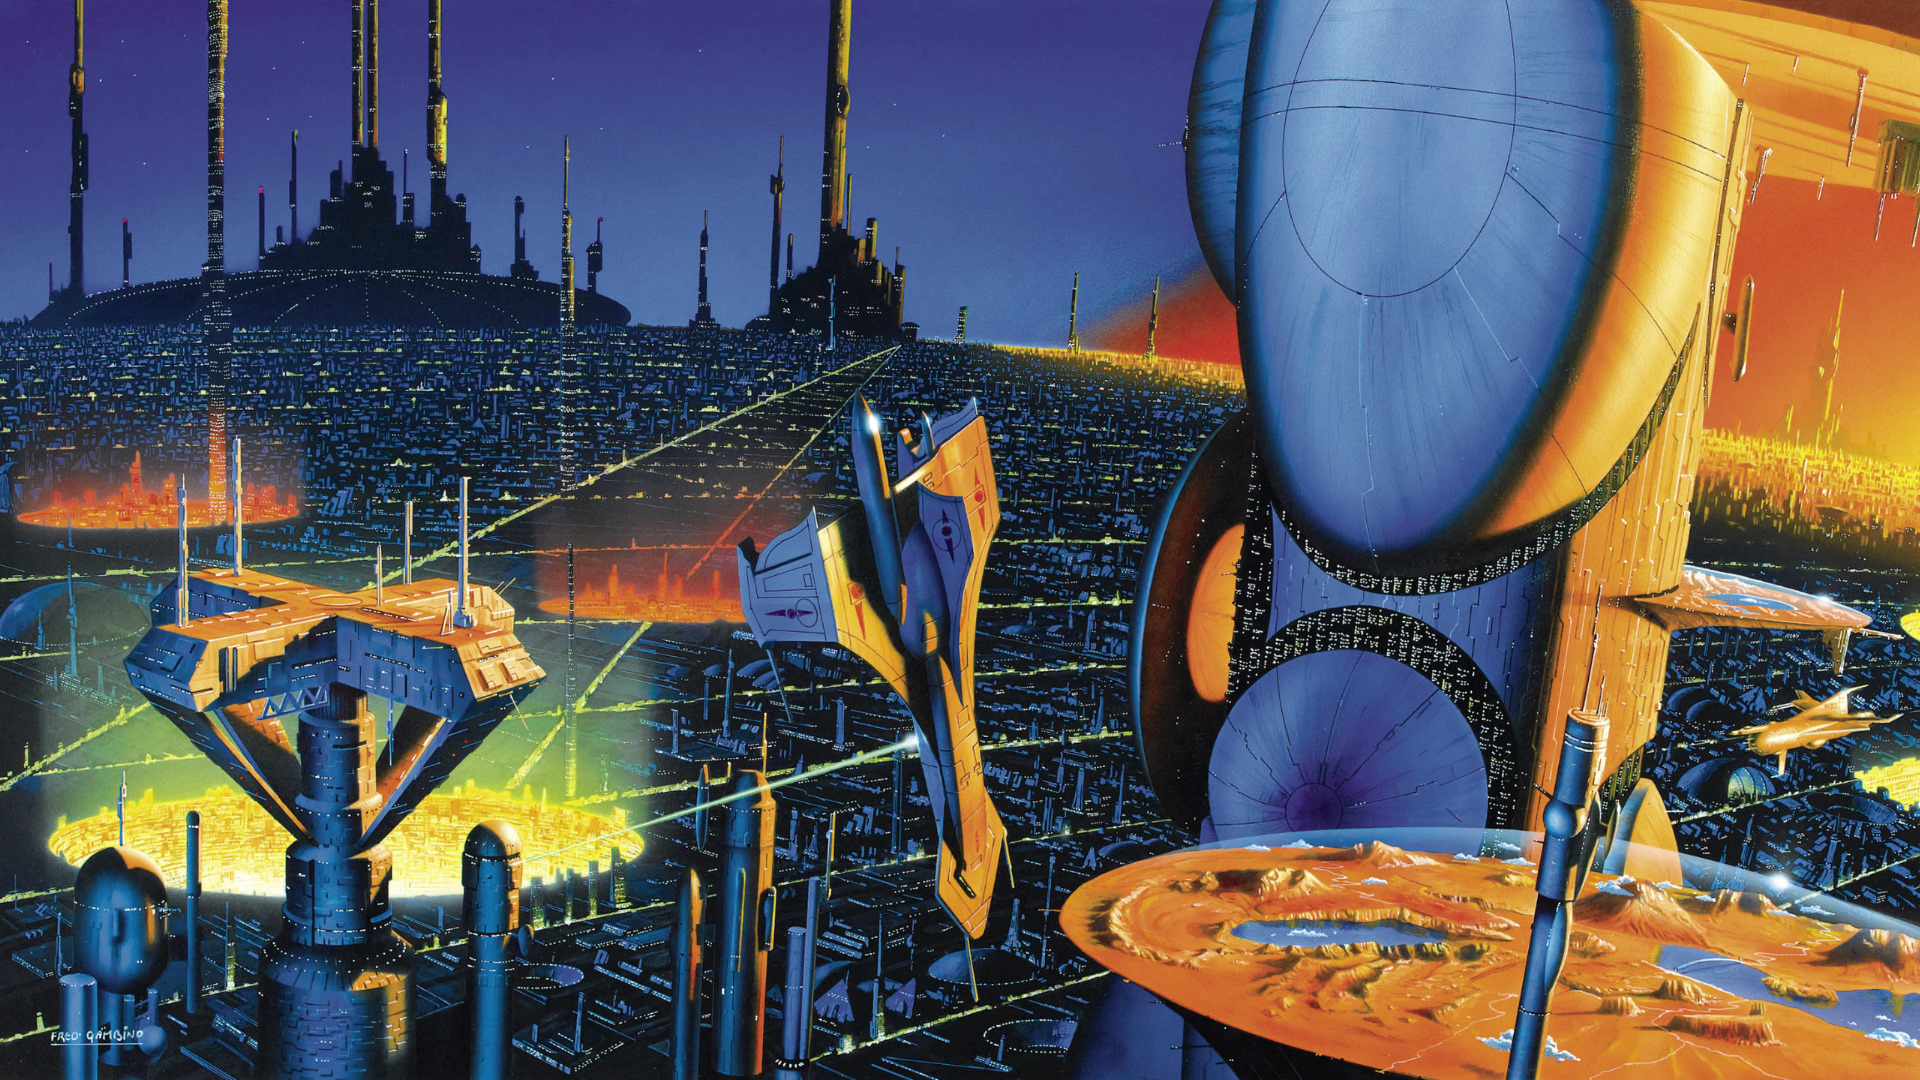 A futuristic city from the Foundation.